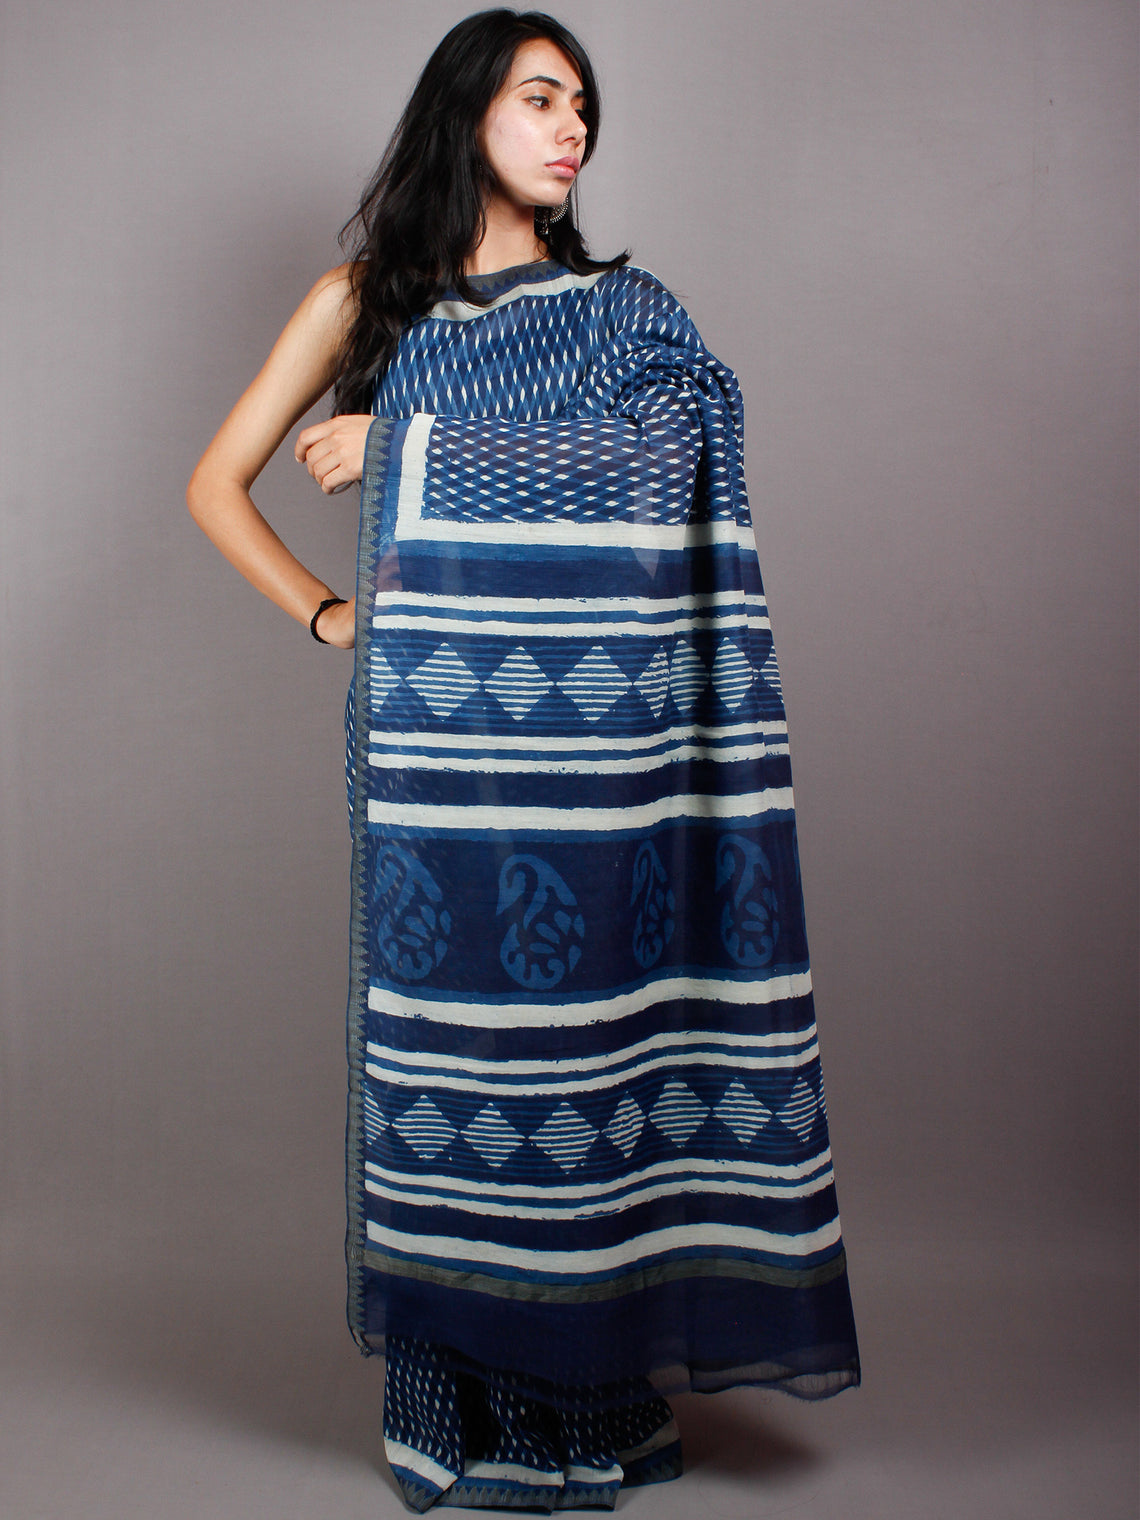 Indigo Ivory White Hand Block Printed in Natural Vegetable Colors Chanderi Saree With Geecha Border - S03170508